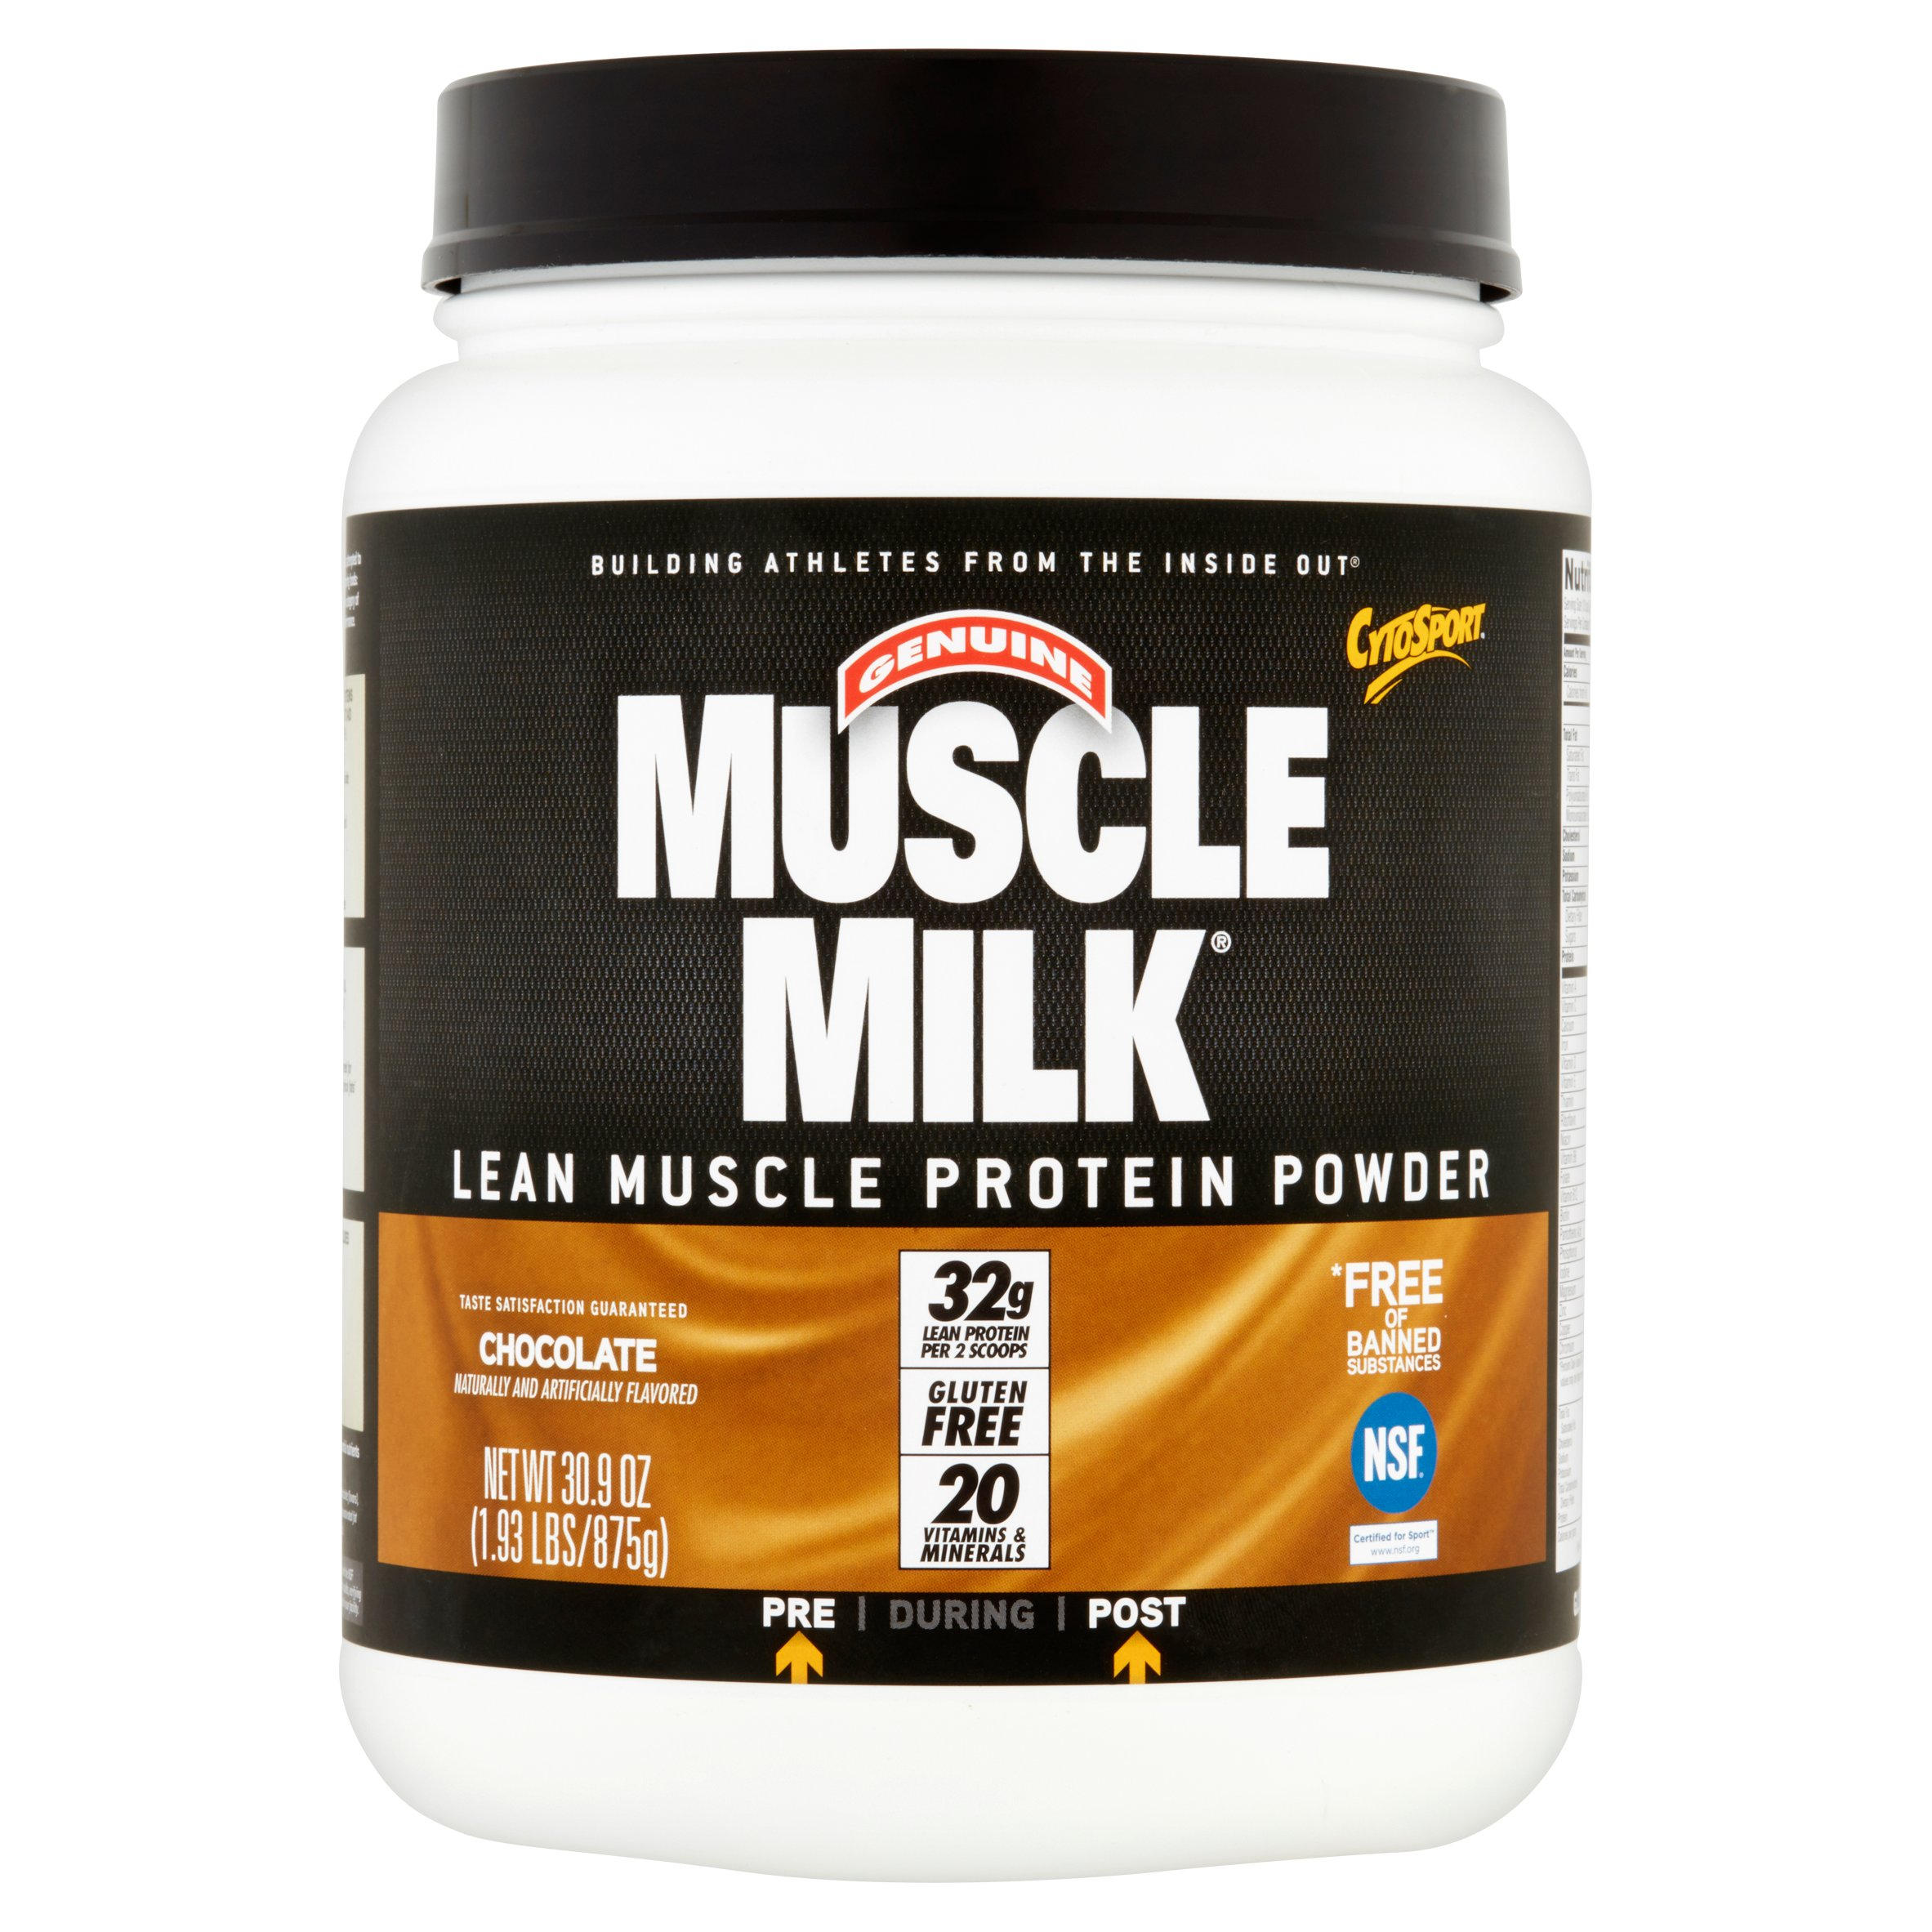 How to mix muscle milk powder